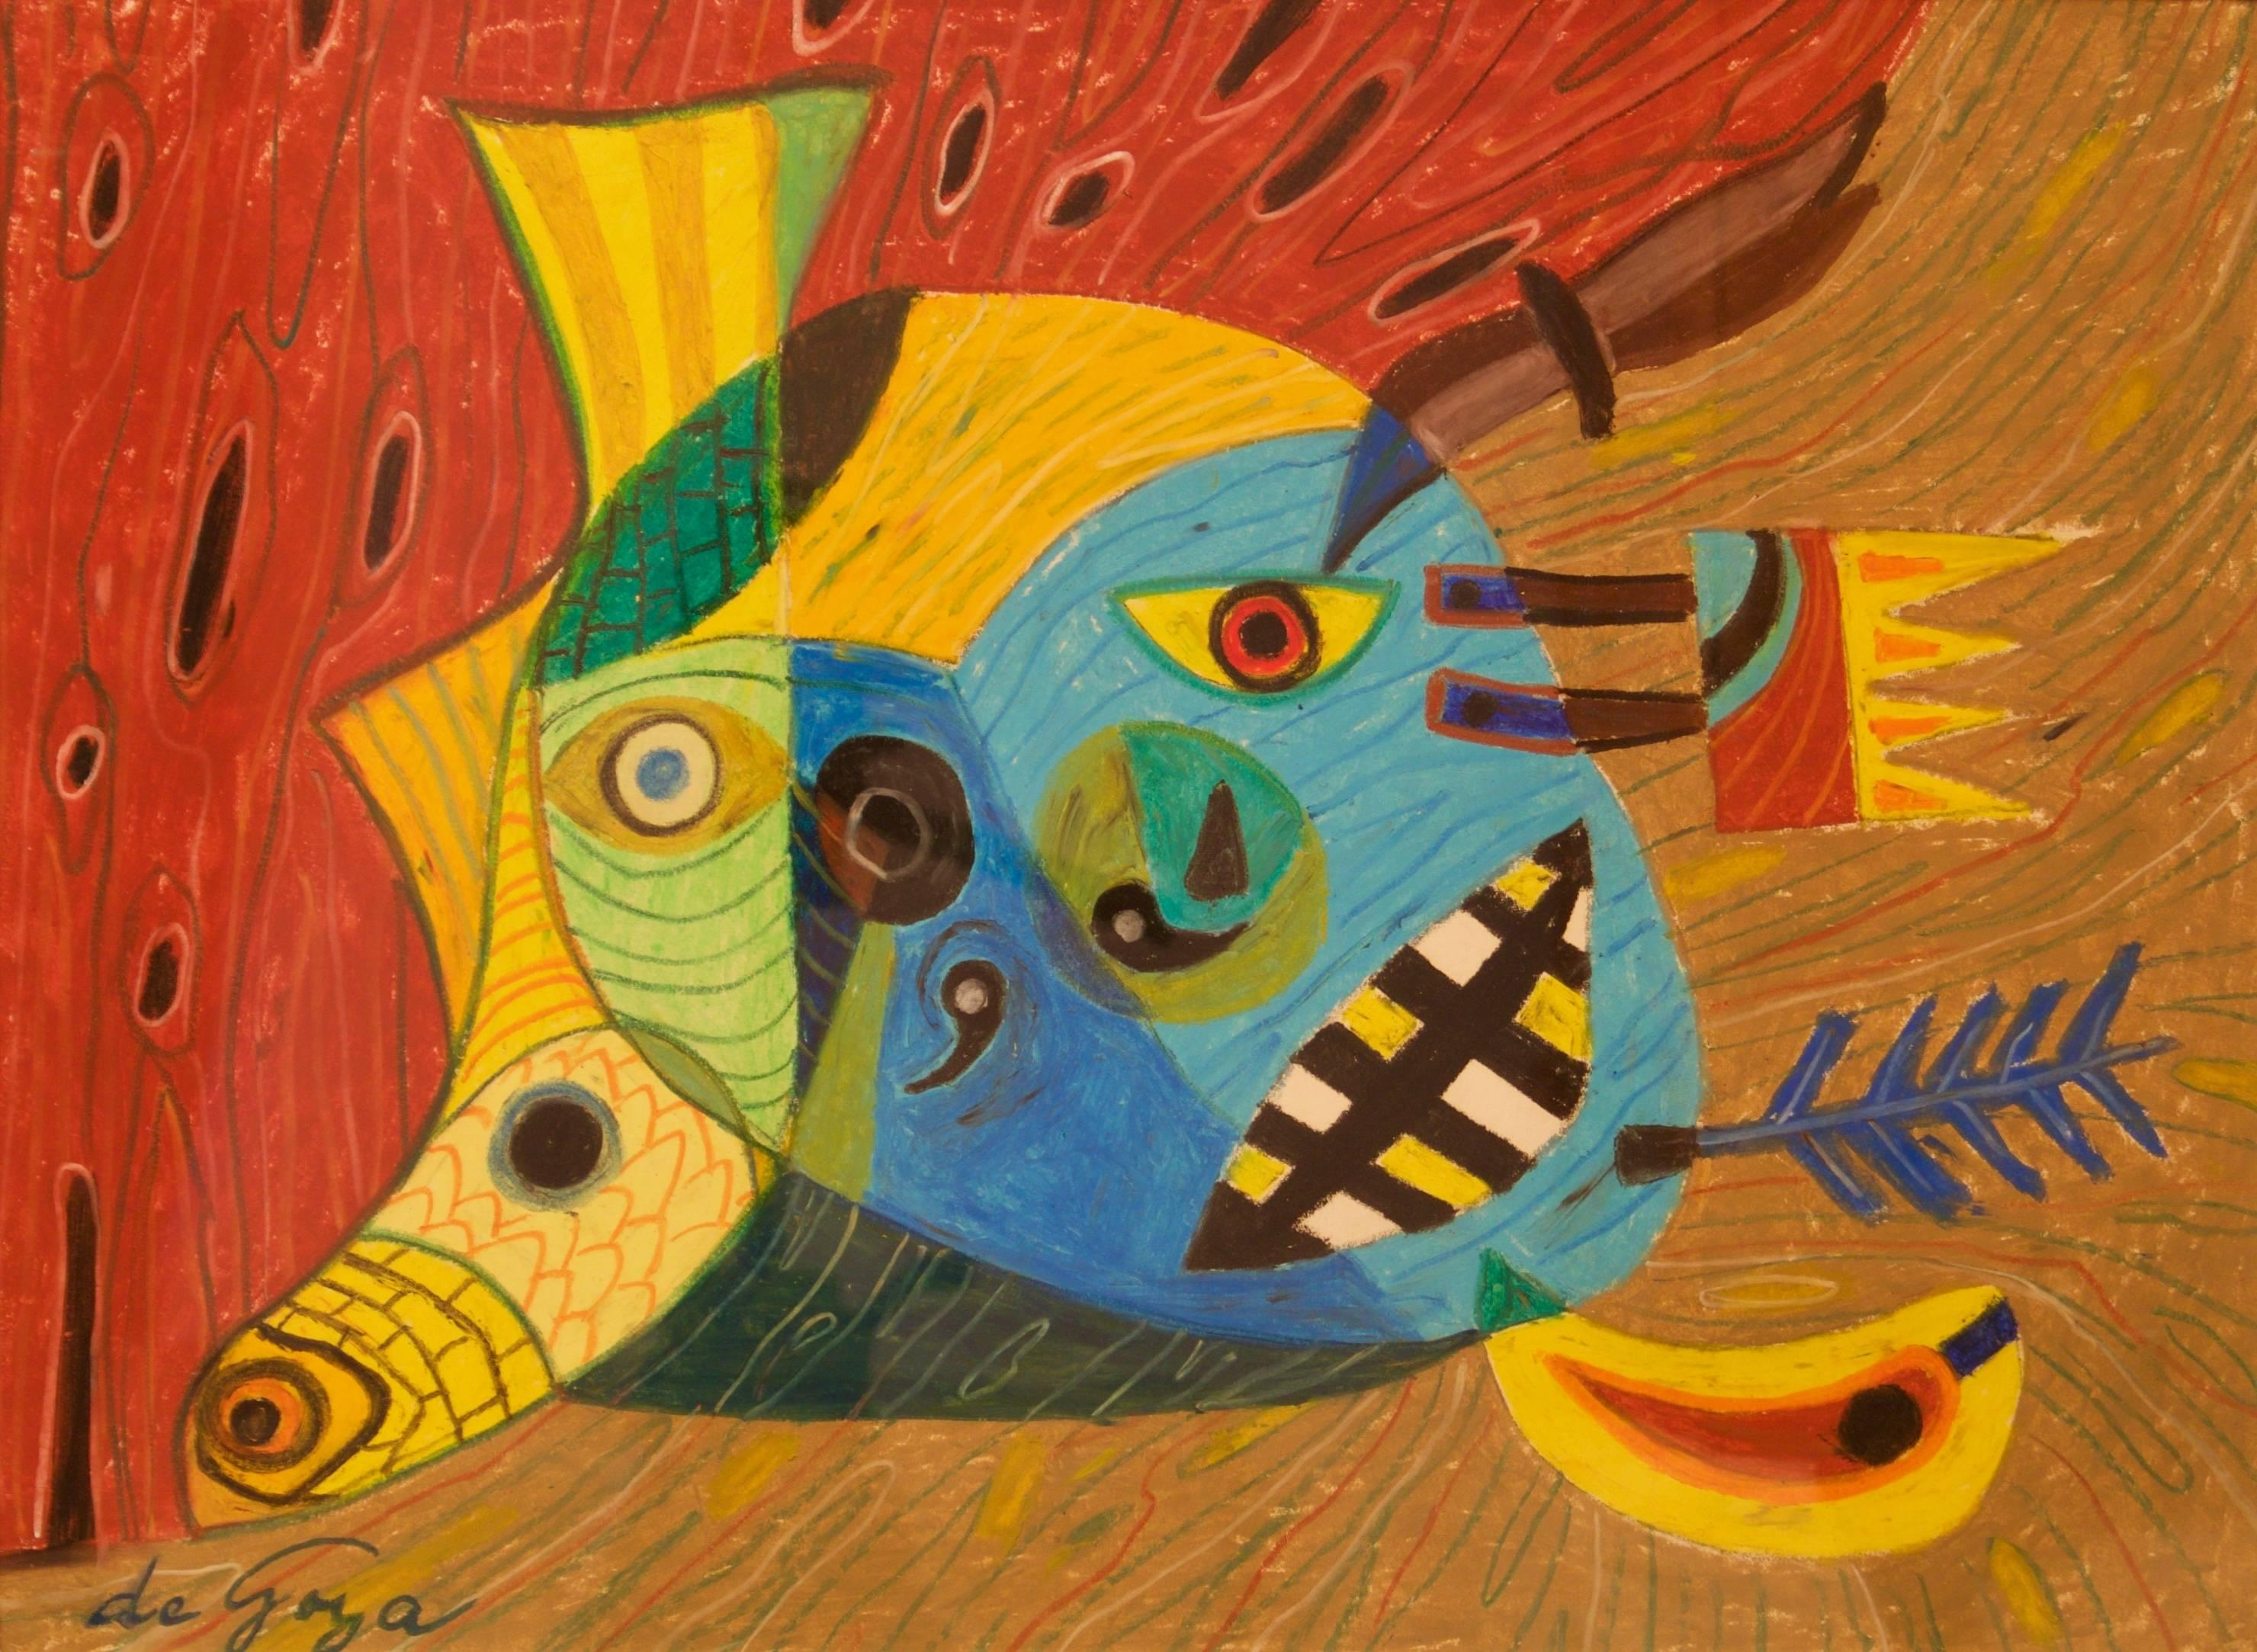 Abstract Face - Mid 20th Century Mixed Media Piece by George De Goya